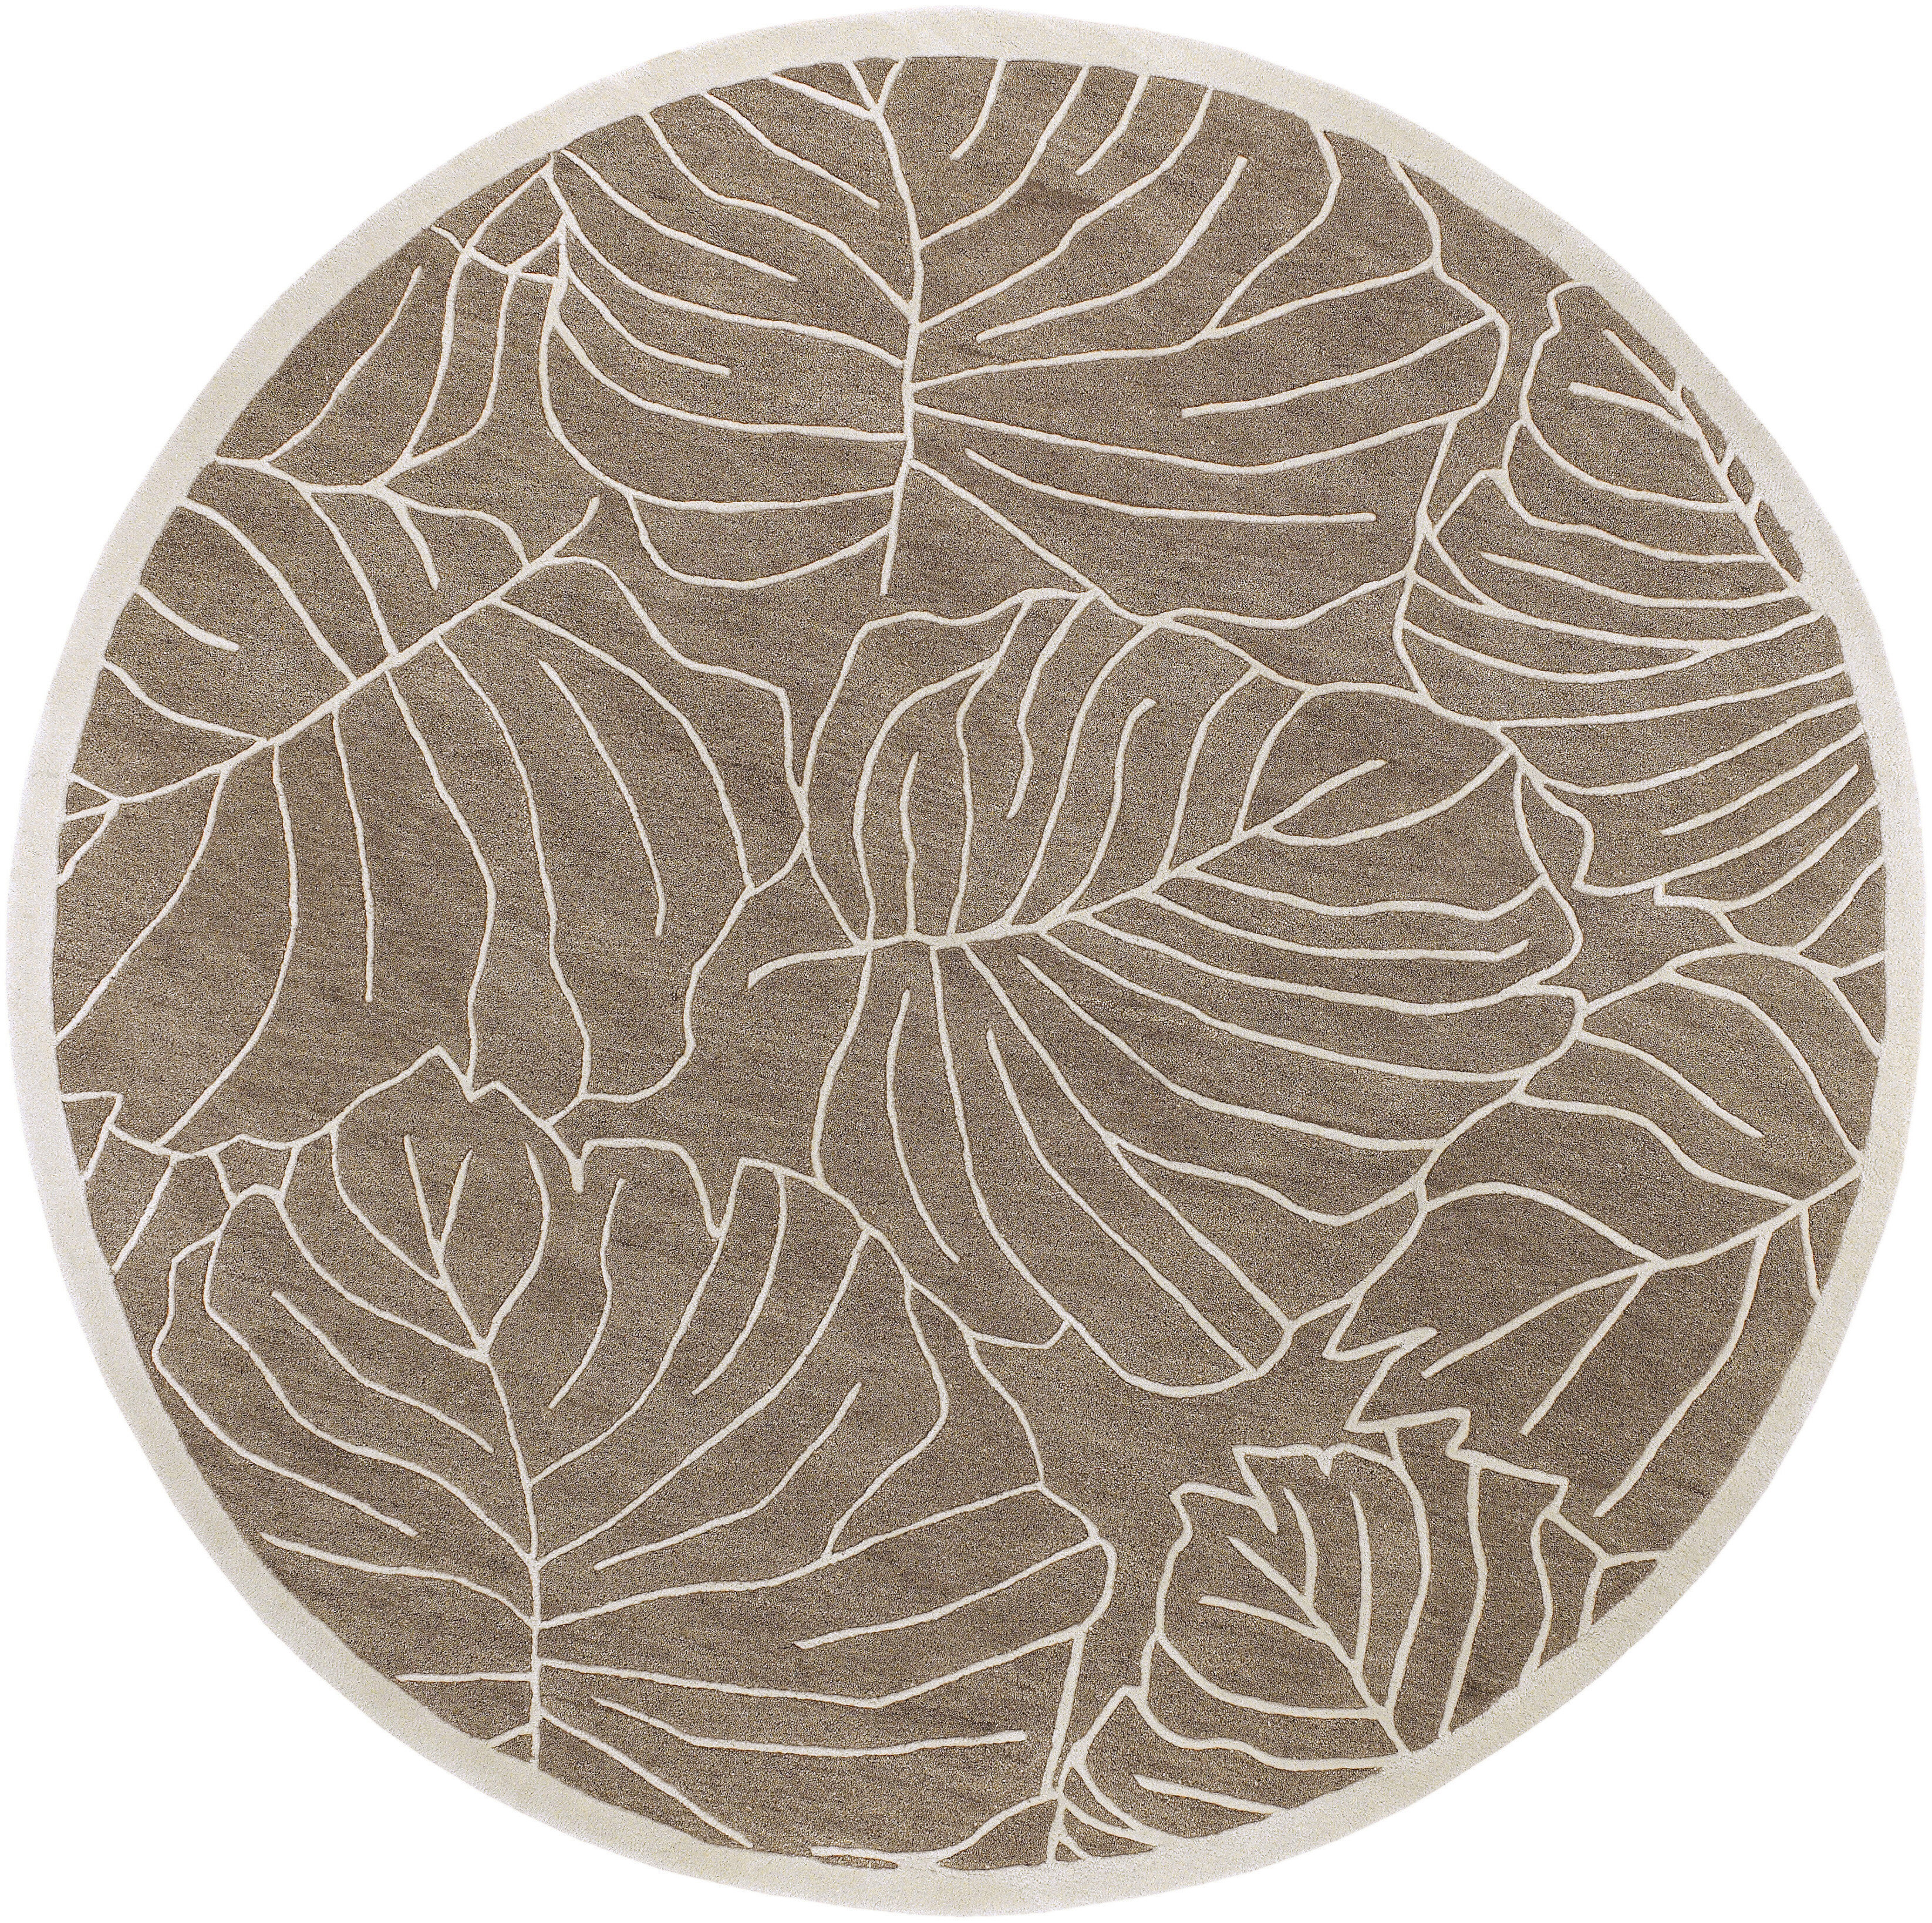 Round Bayou Breeze Area Rugs You Ll Love In 2021 Wayfair